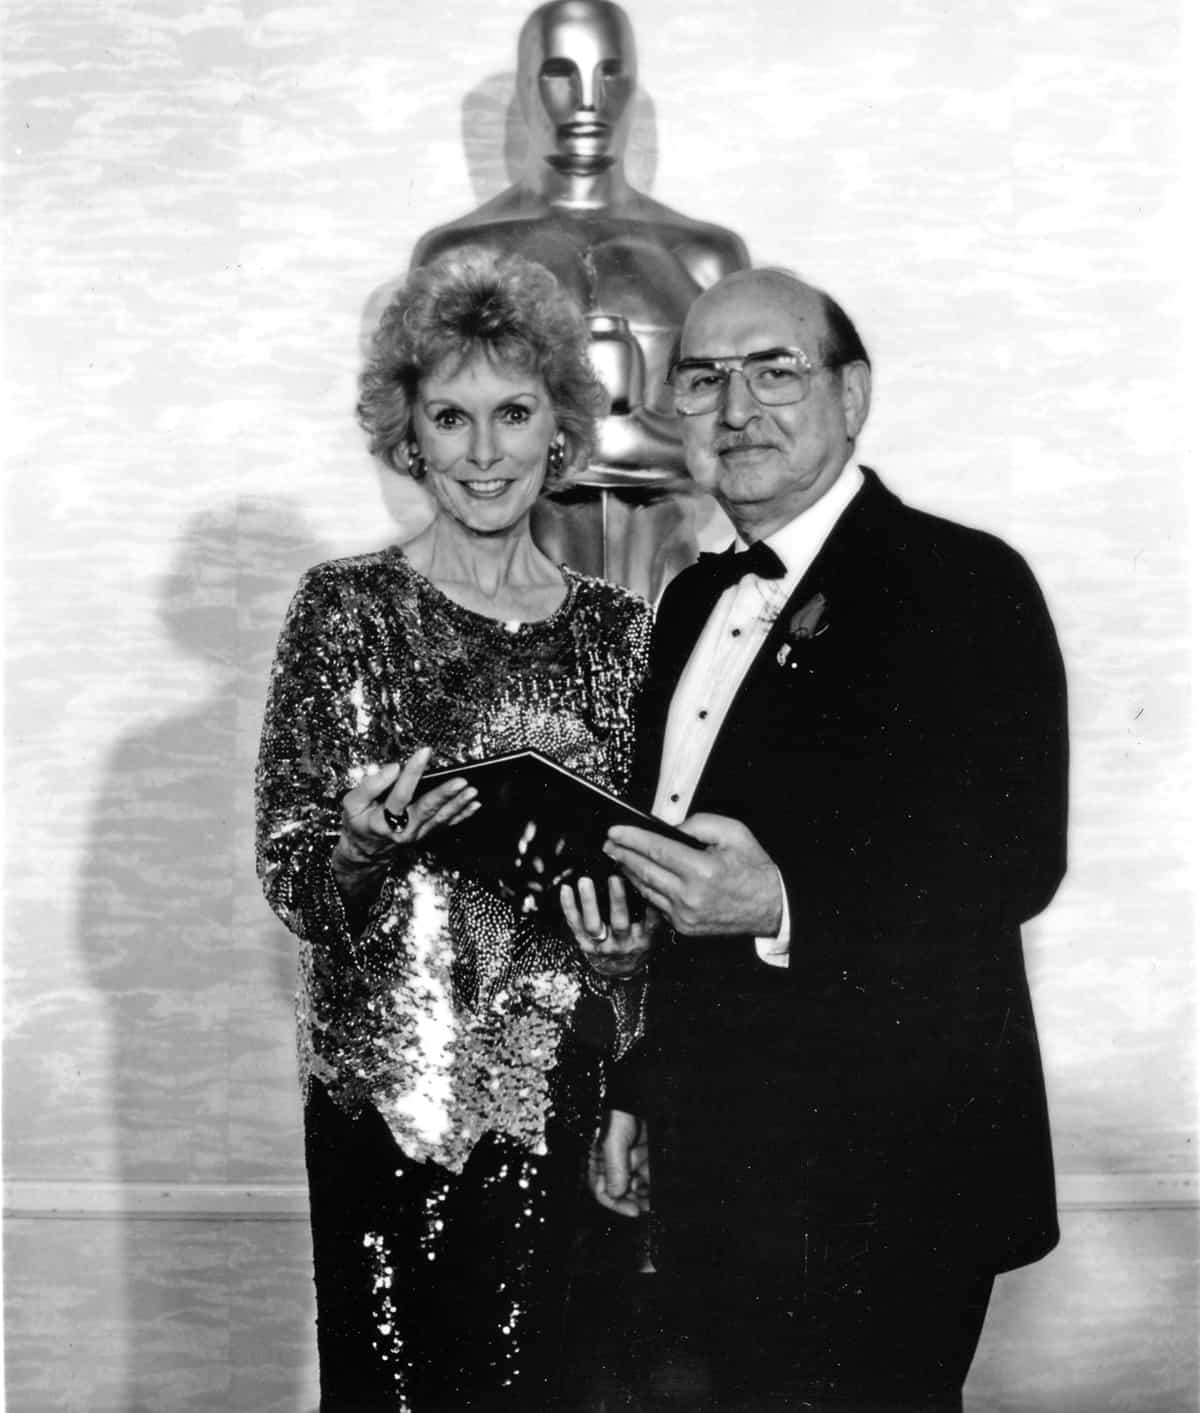 Nat Tiffen holds the Technical Achievement Award of Academy of Motion Picture Arts and Sciences, presented by Janet Leigh